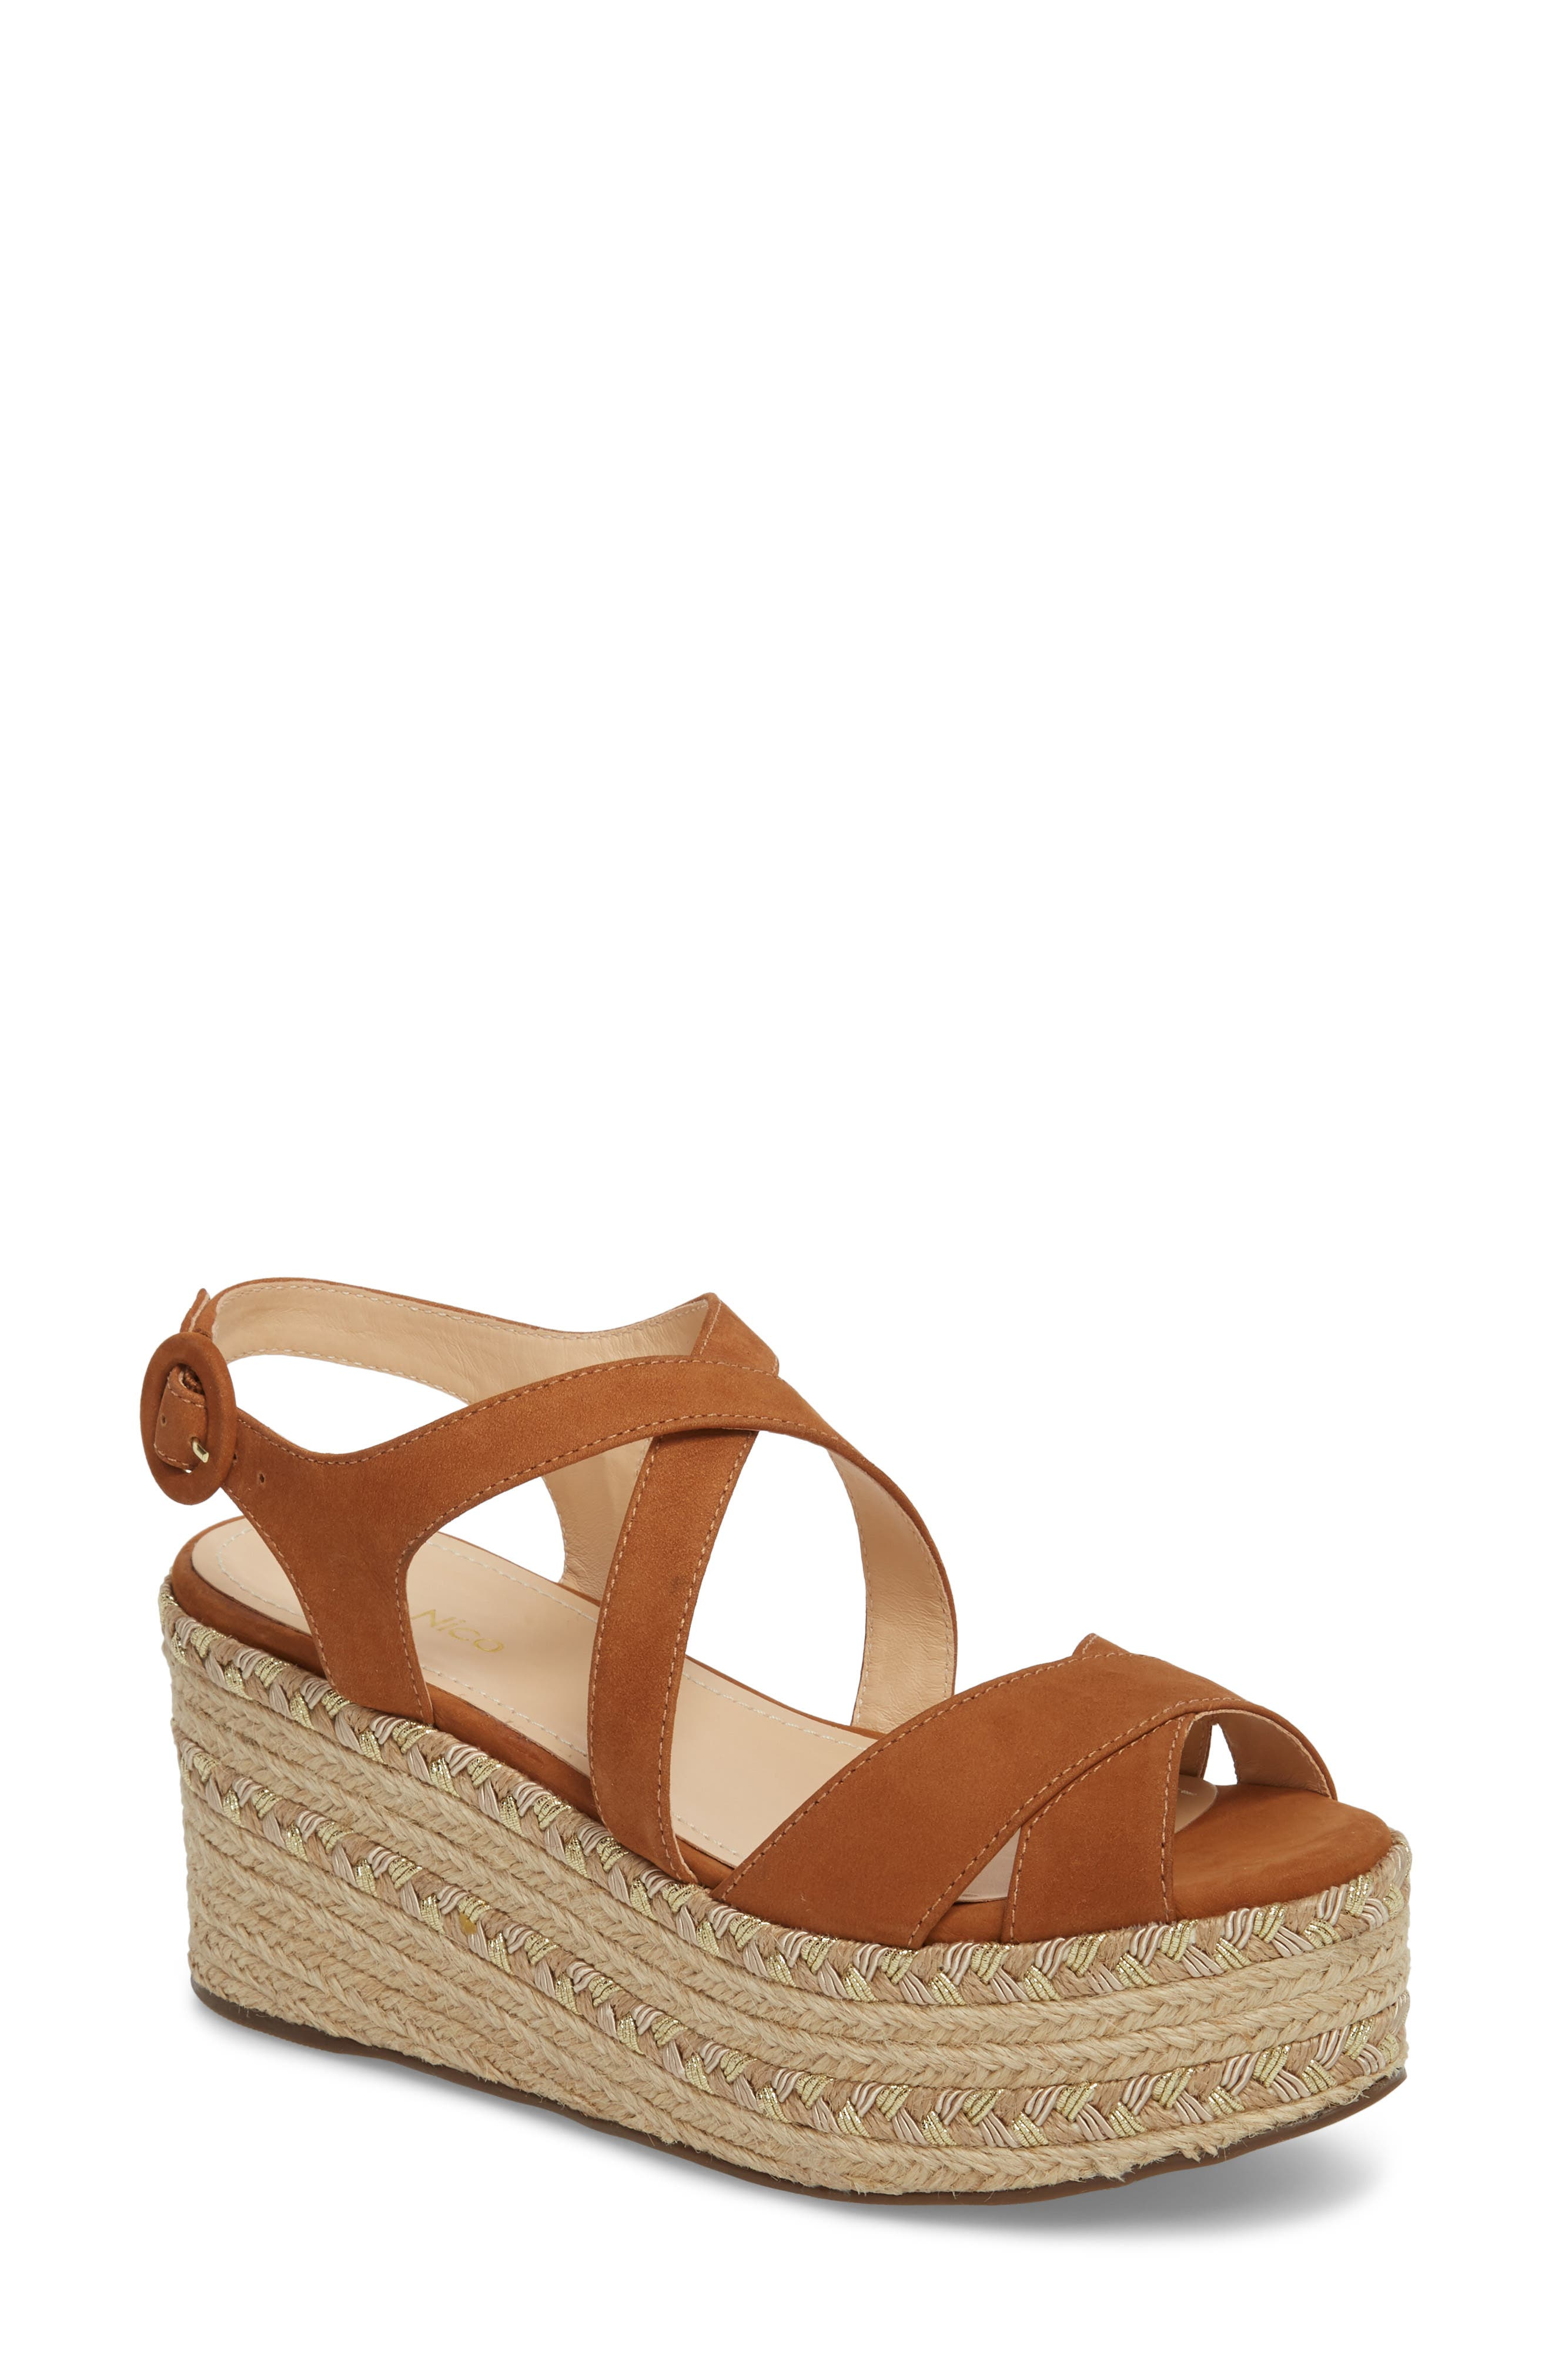 KLUB NICO Vikki Espadrille Platform Sandal, Main, color, TAN LEATHER